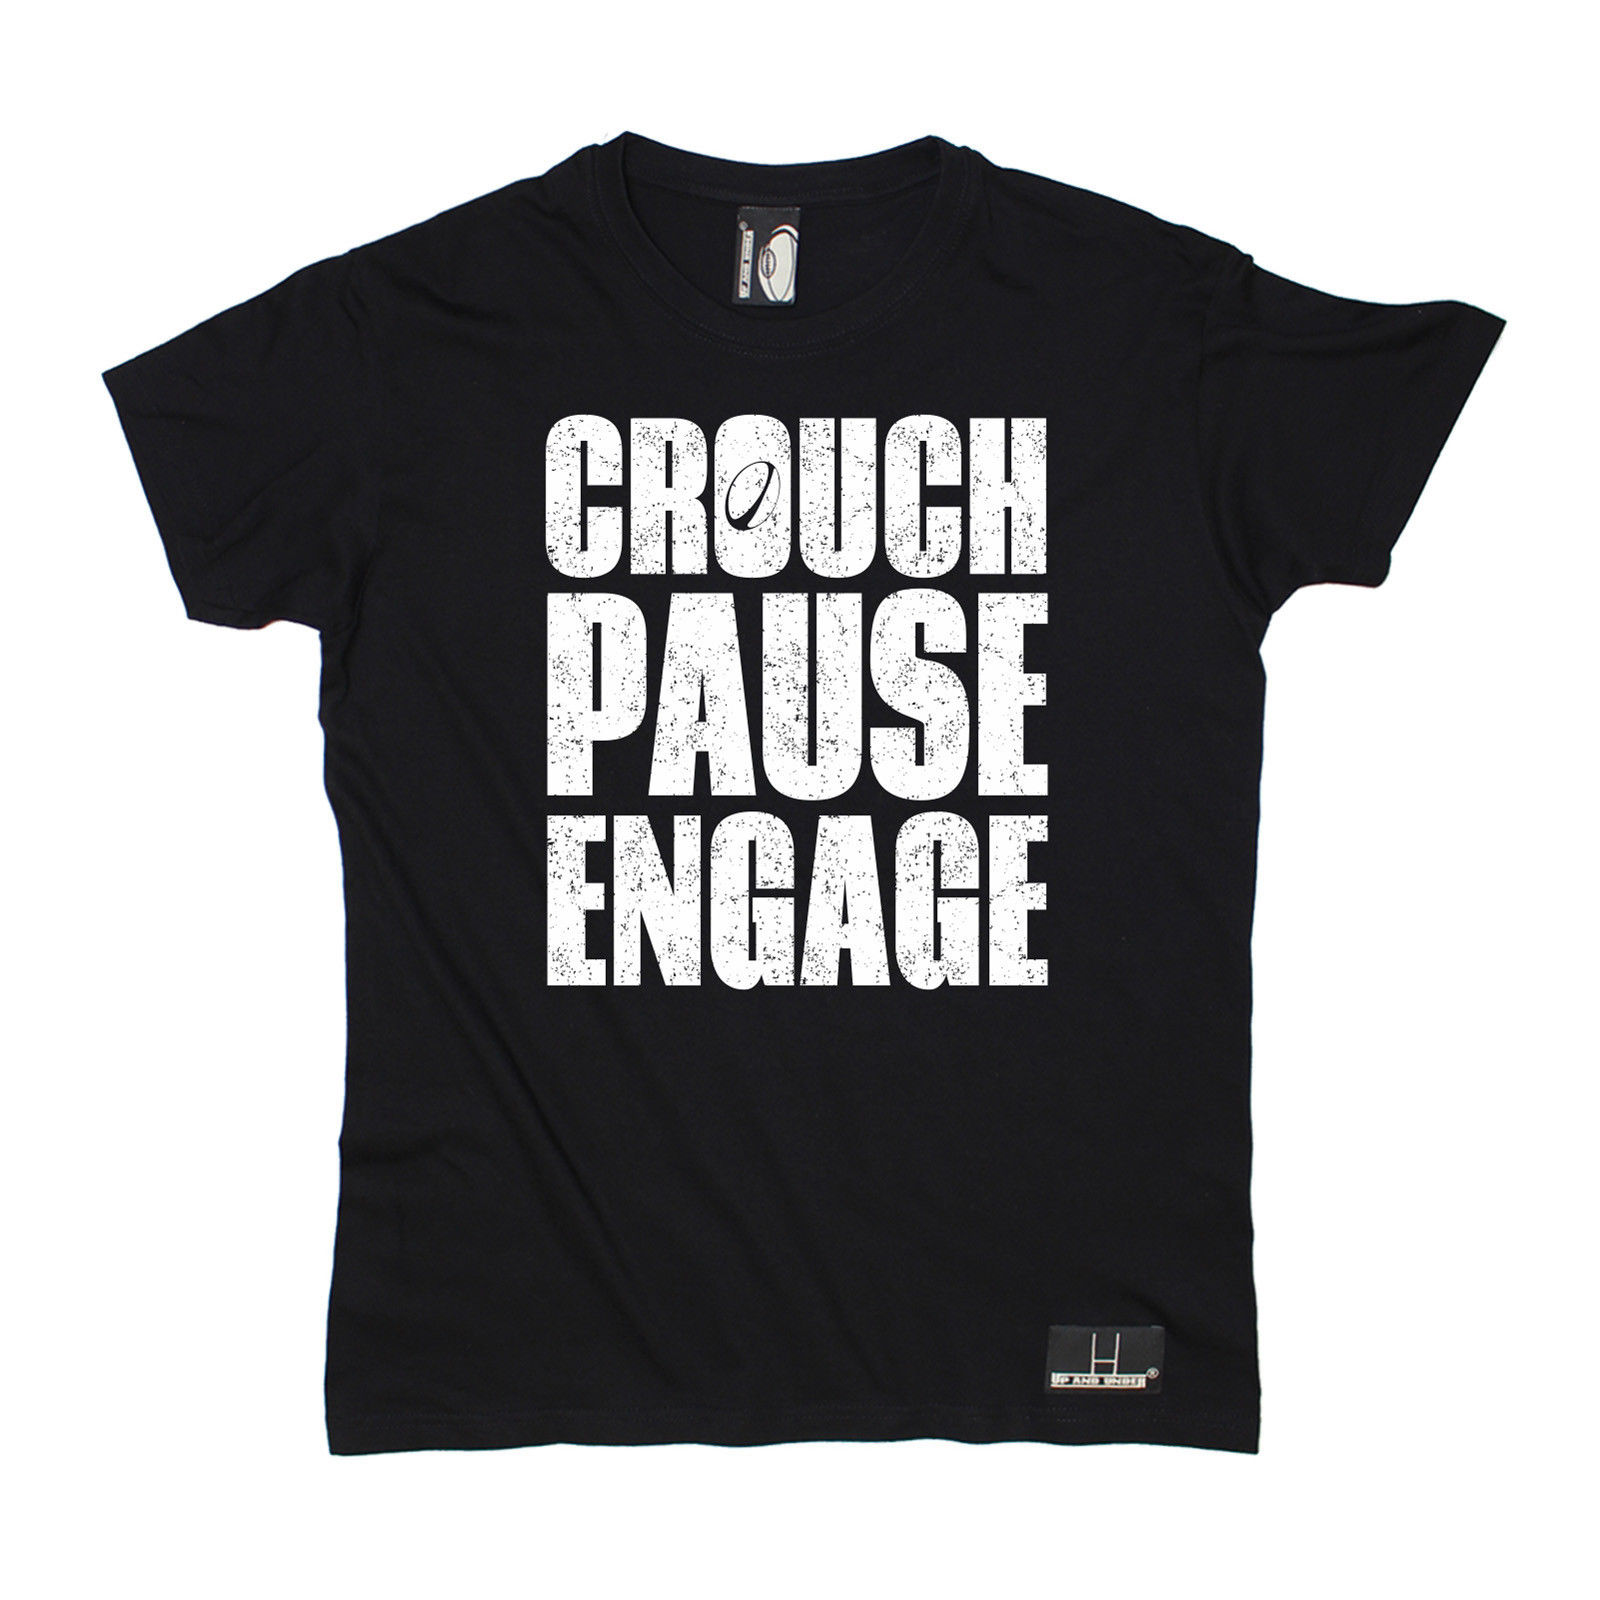 Crouch Pause Engage T-SHIRT Tee Rugbying Rugga Team Funny Birthday Gift Present Him Print T Shirt Summer Style Clothing T shirt(China (Mainland))